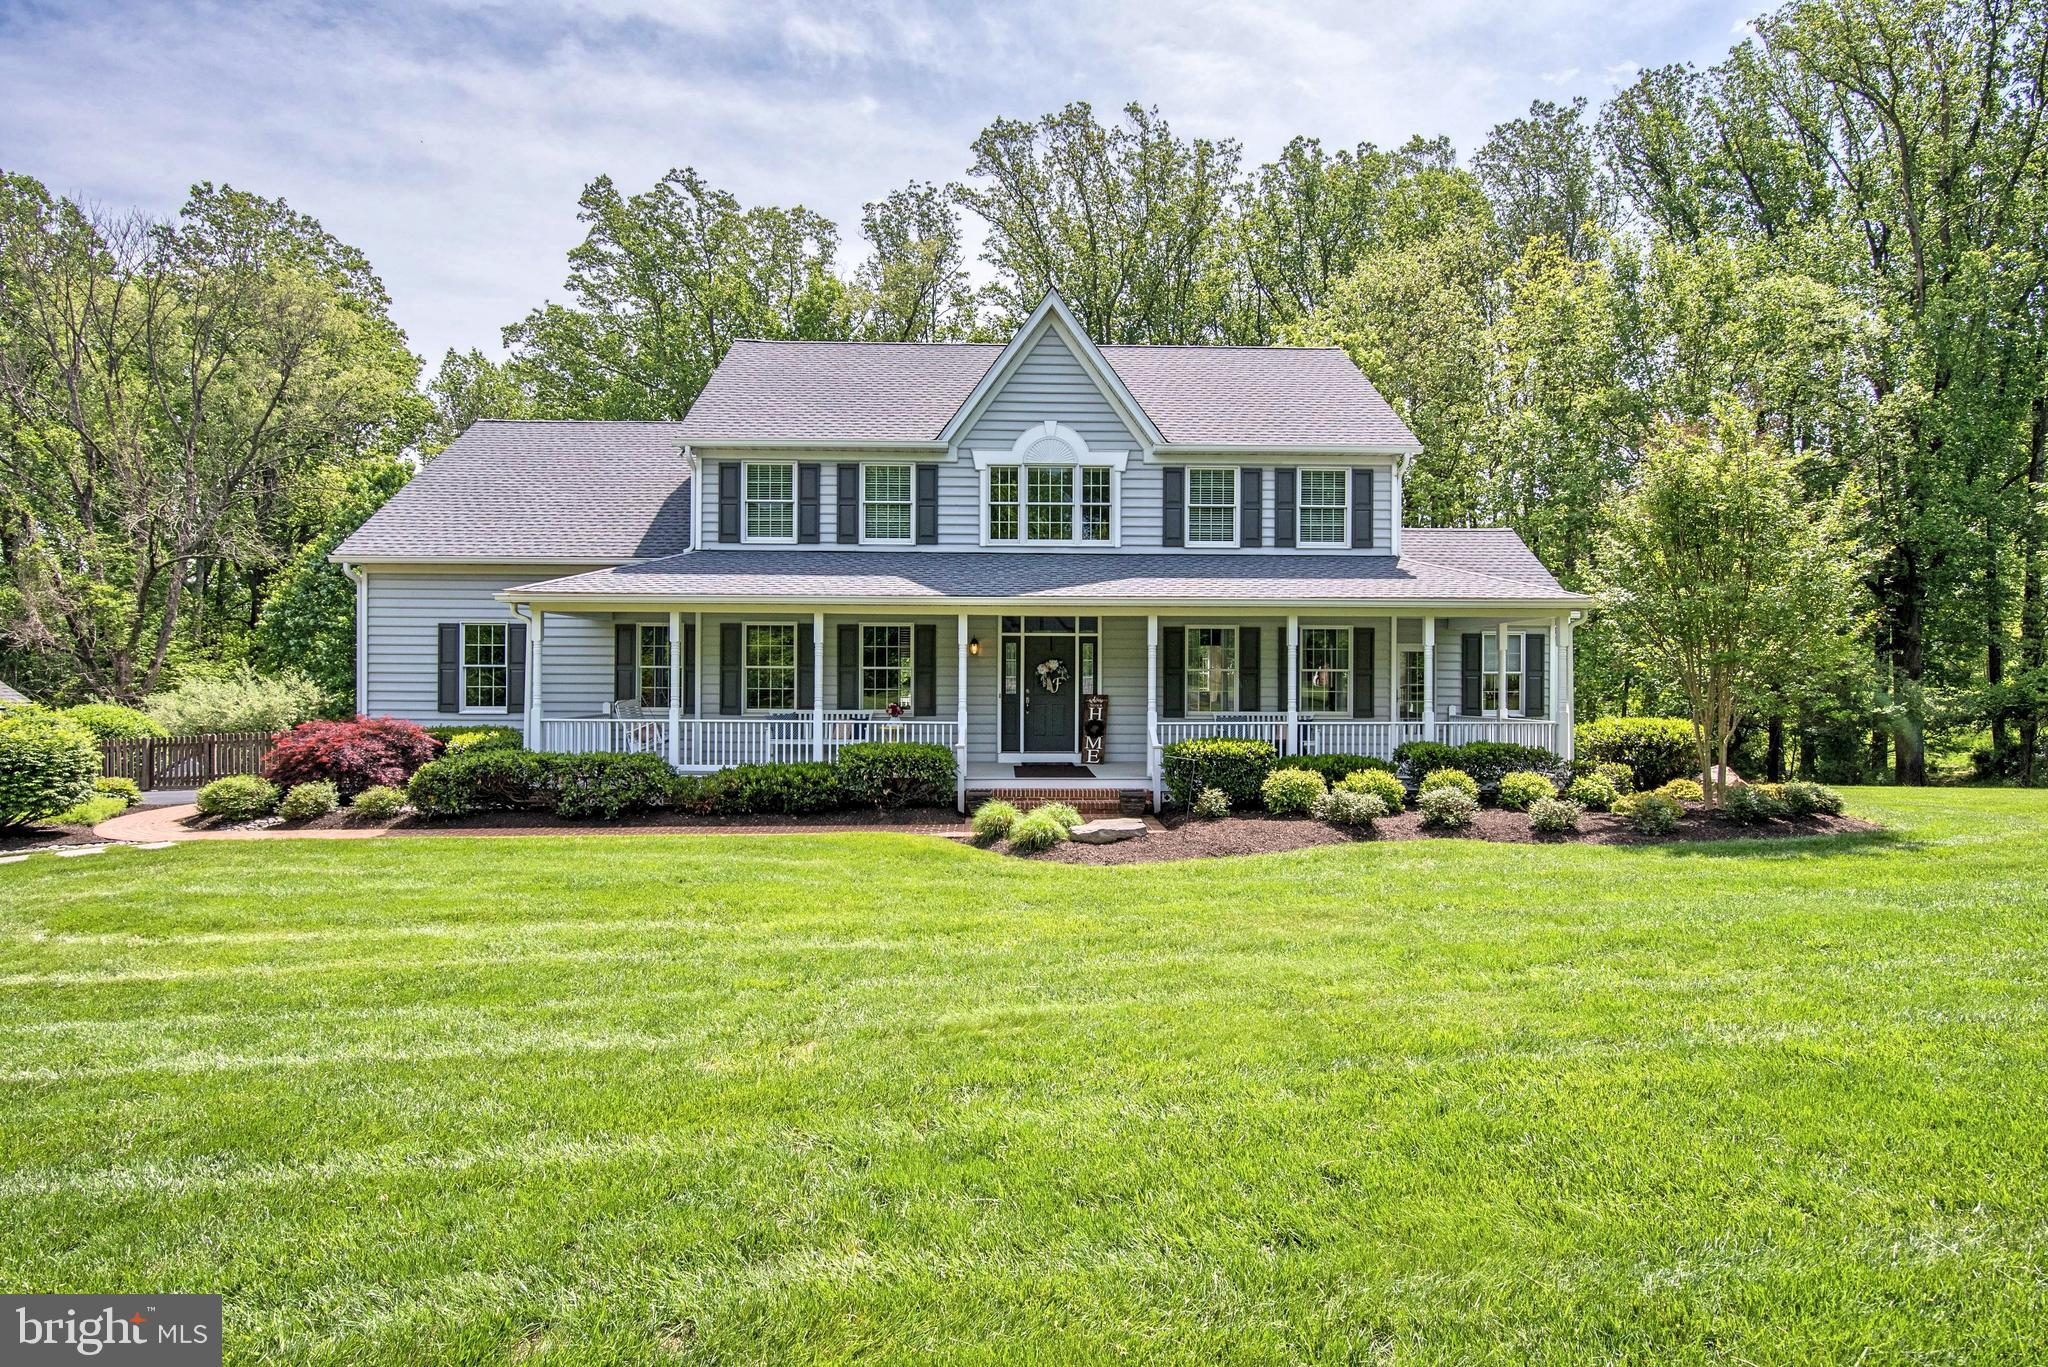 12252 WOODFORD DRIVE, MARRIOTTSVILLE, MD 21104